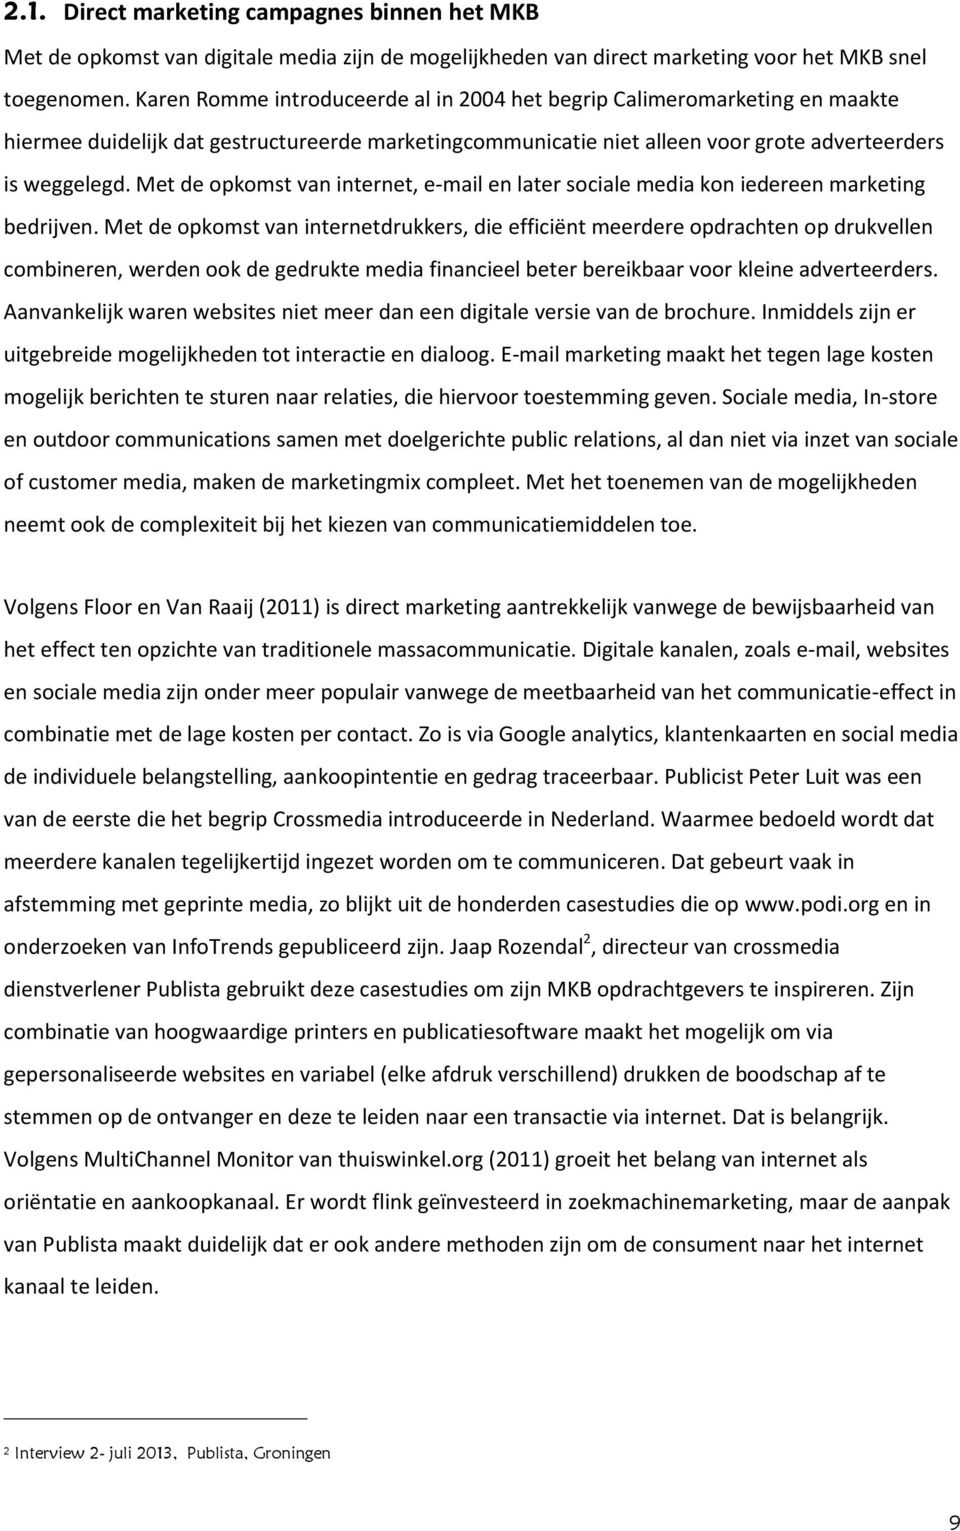 Met de opkomst van internet, e-mail en later sociale media kon iedereen marketing bedrijven.